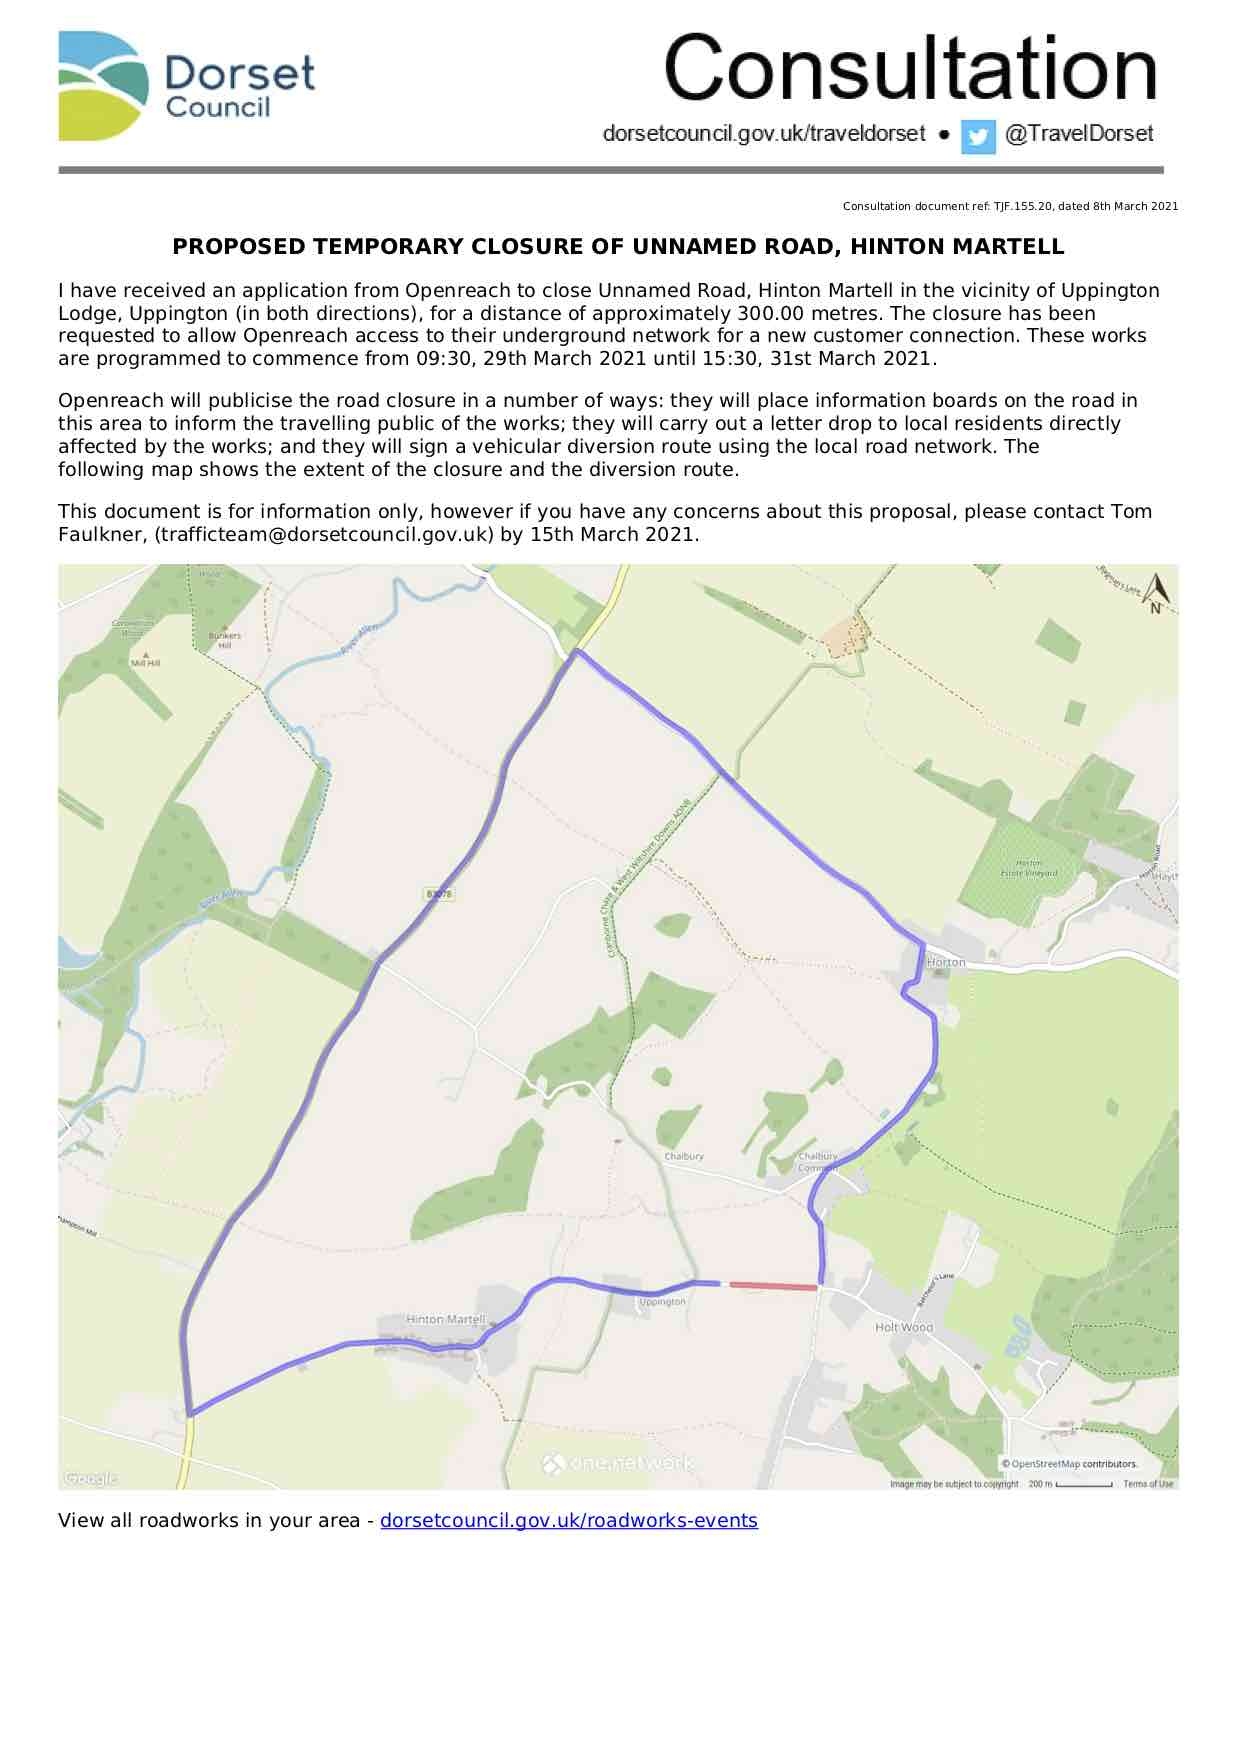 Image of consultation notice including the map with diversions